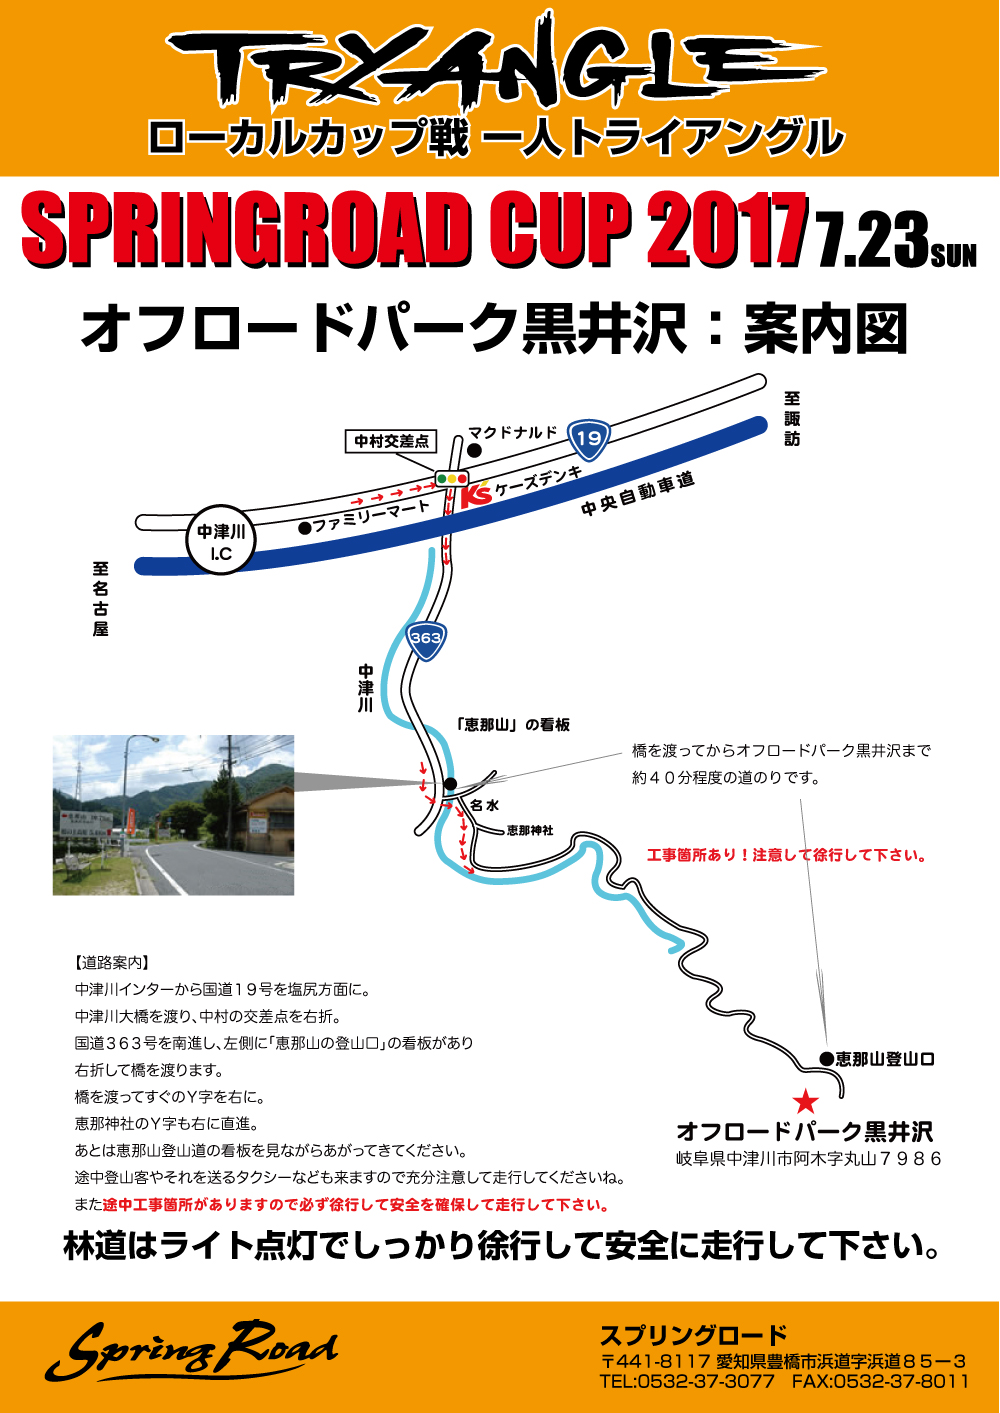 http://springroad.jp/sp2017_map.jpg